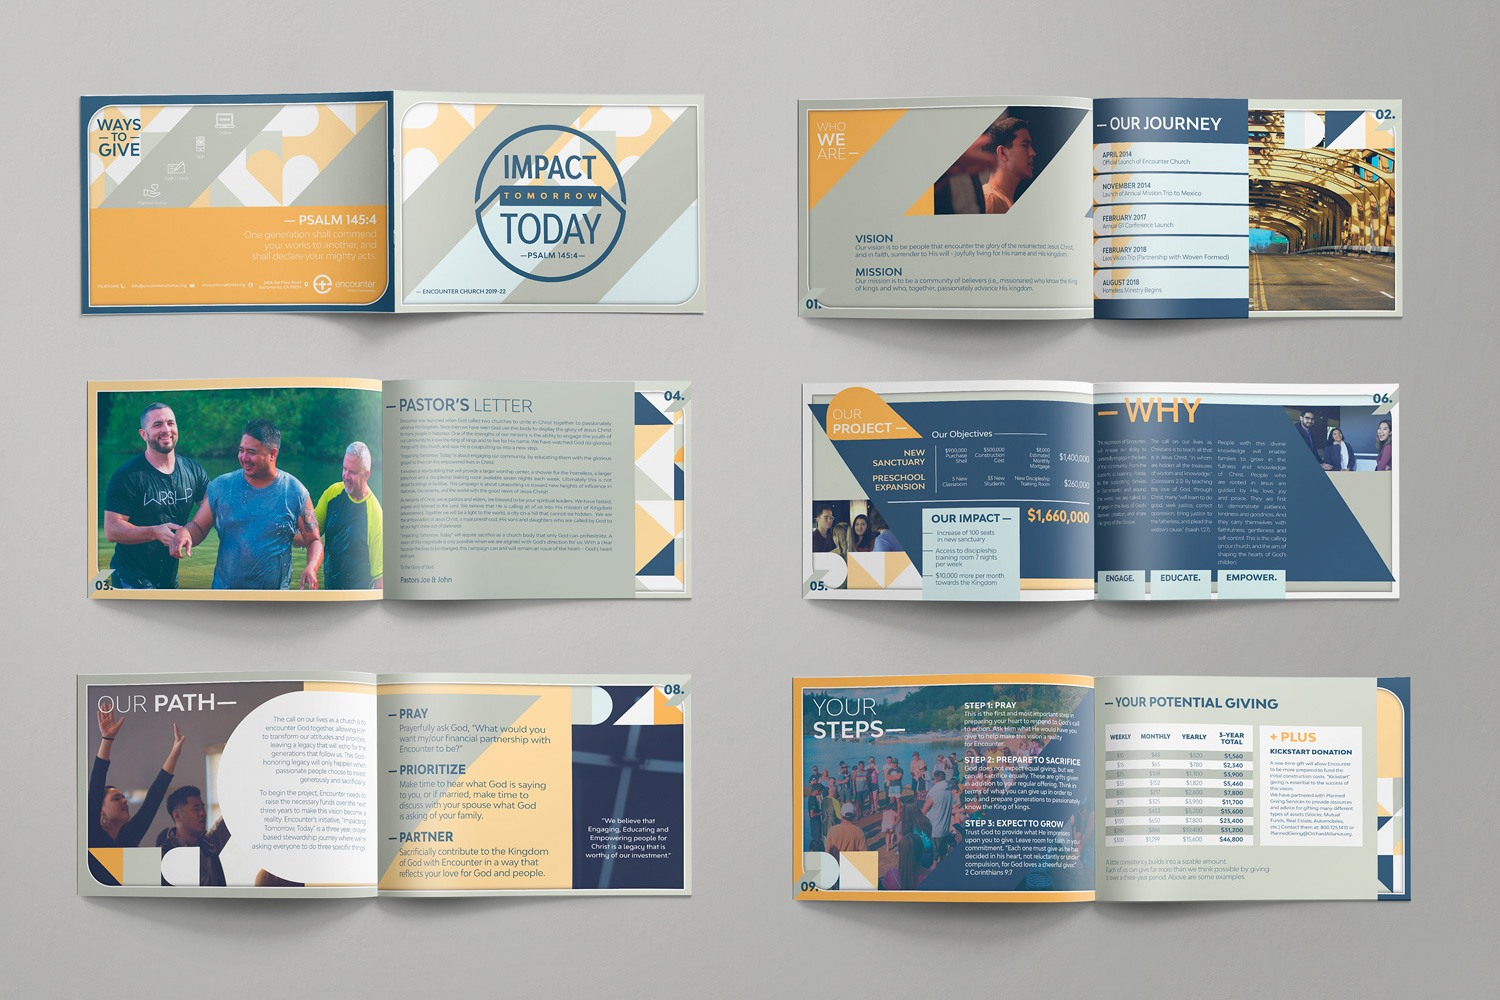 Multi-page brochure case statement for church capital fundraising. 12-page booklet by Abstract Union